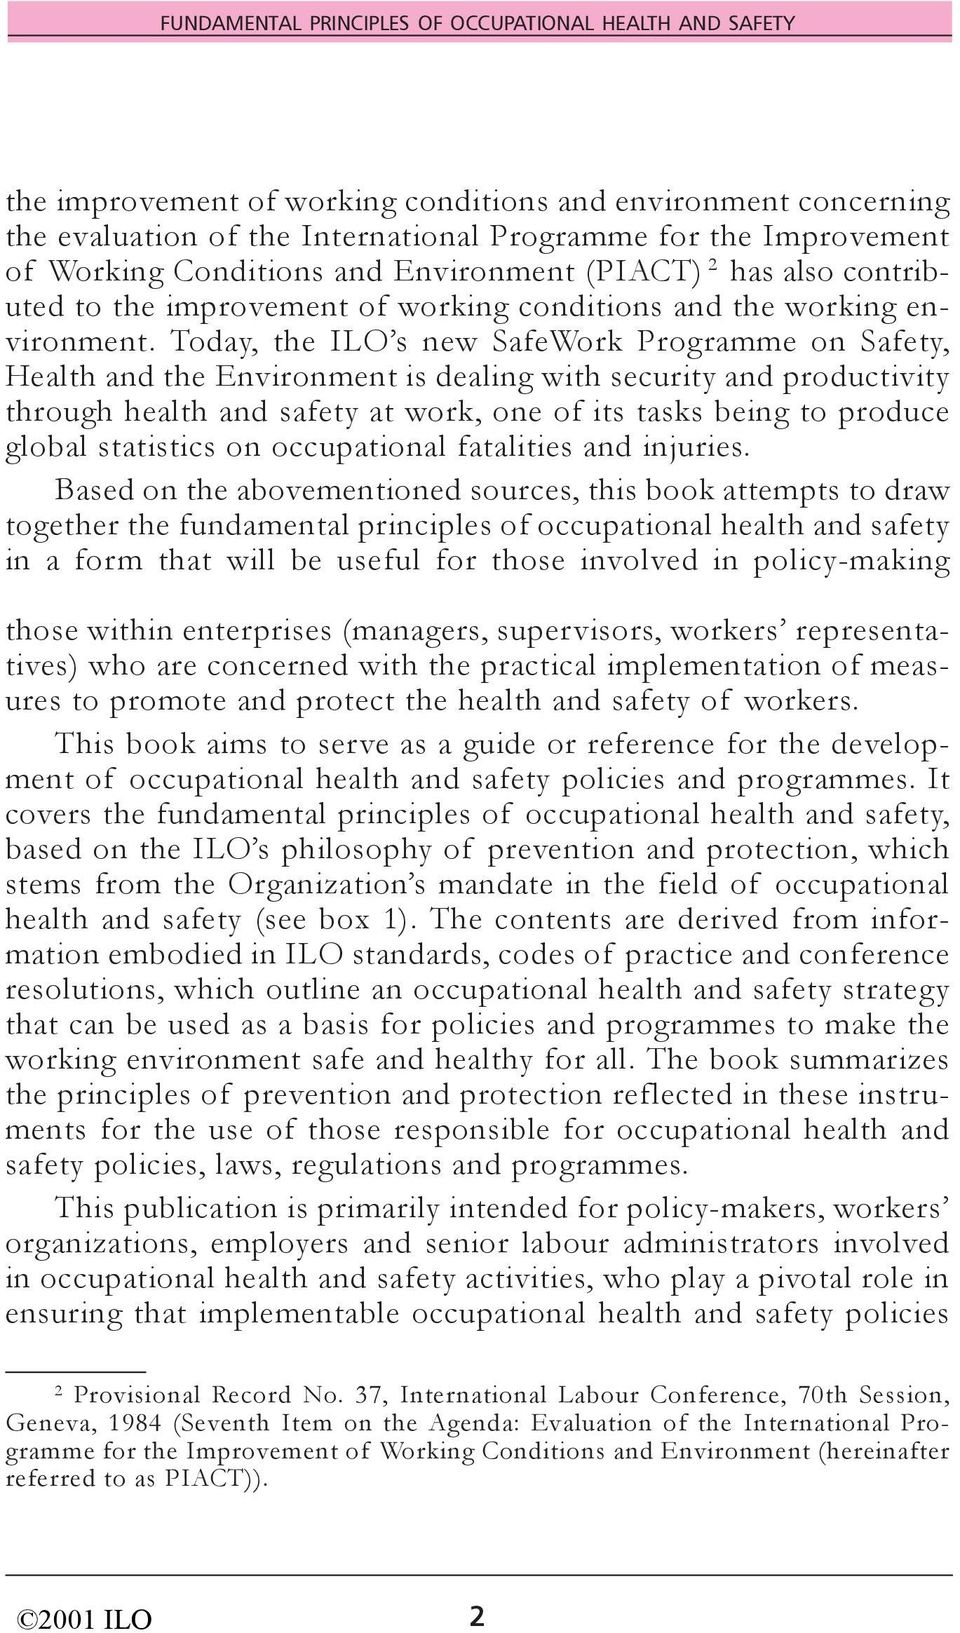 fundamental principles of environmental Environmental justice calls for the universal protection from extraon, production and disposal of toxic/hazardous wastes and poisons and nuclear testing that threaten the fundamental right to clean air, water and food.